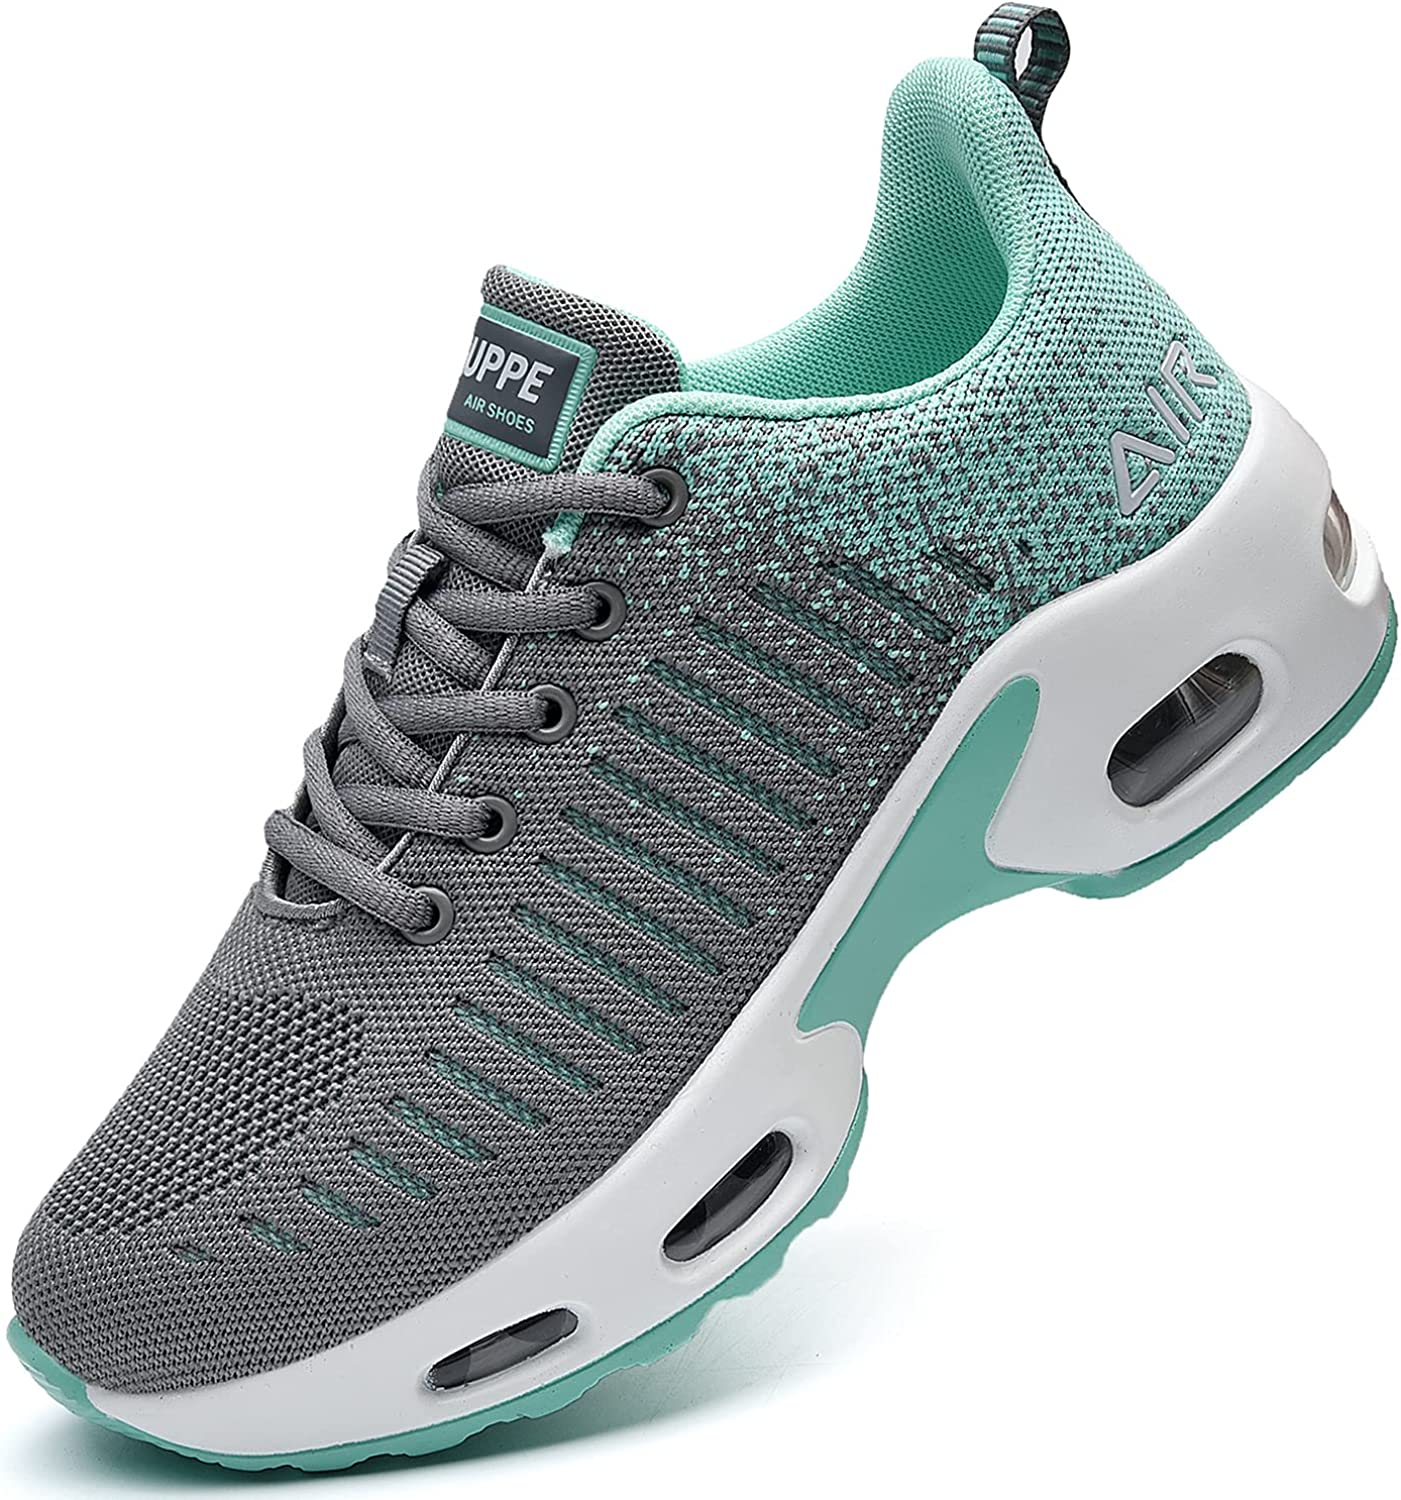 Spasm price QAUPPE Womens Fashion Lightweight Air Los Angeles Mall Br Sneakers Sports Walking